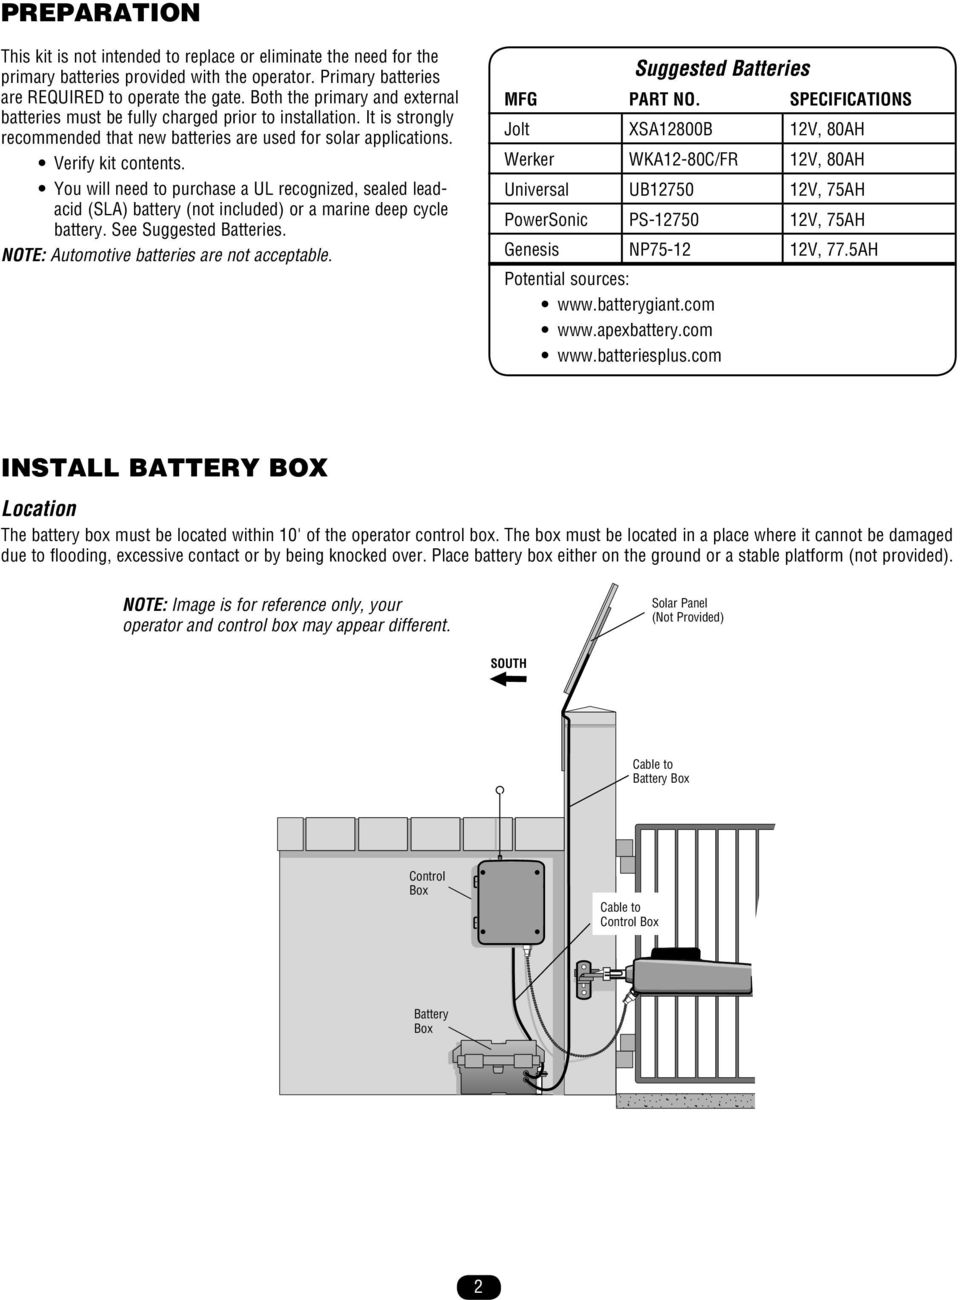 You will need to purchase a UL recognized, sealed leadacid (SLA) battery (not included) or a marine deep cycle battery. See Suggested Batteries. NOTE: Automotive batteries are not acceptable.